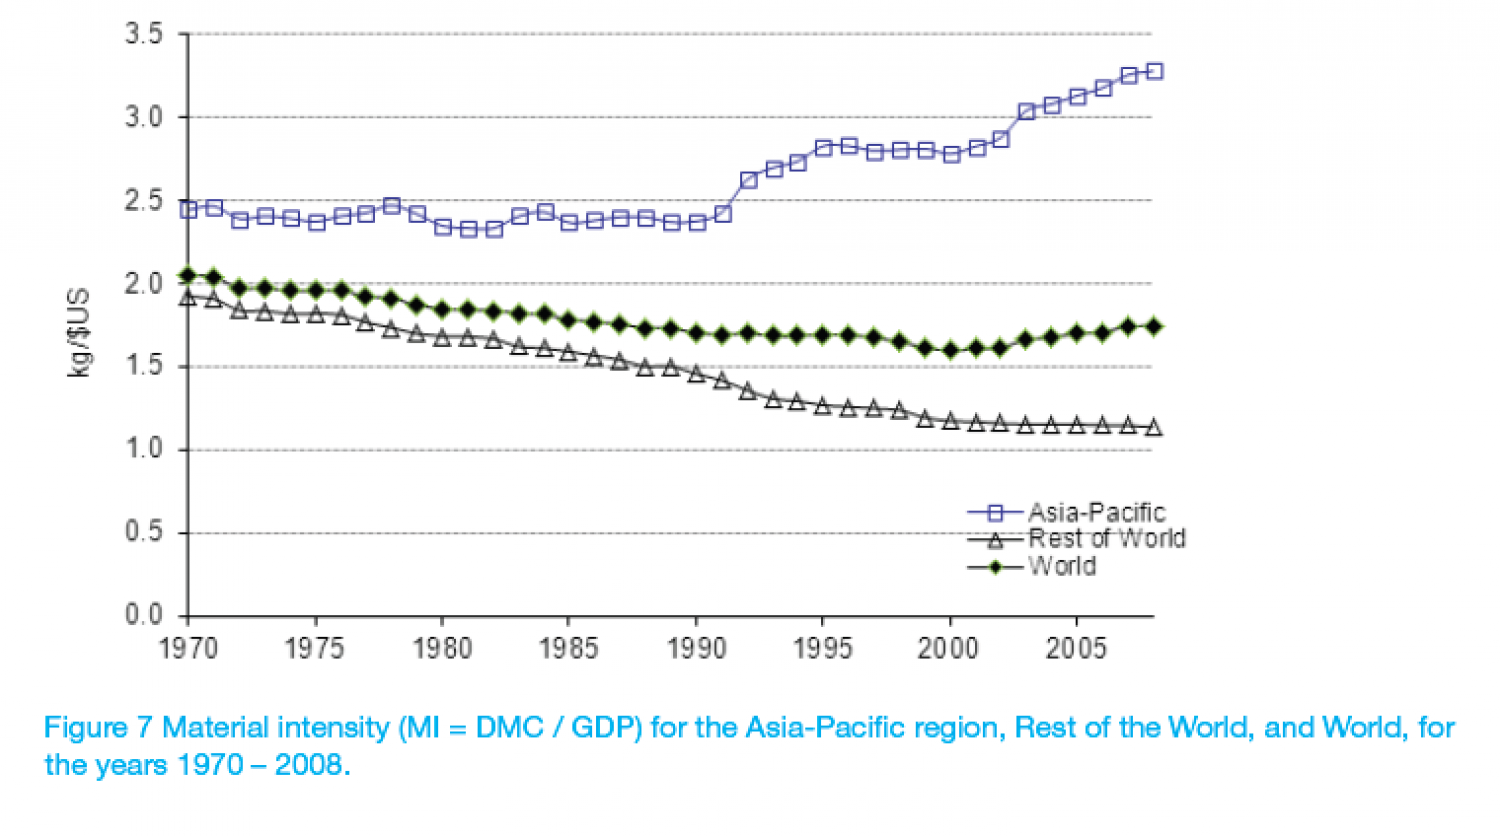 Material intensity (MI = DMC / GDP) for the Asia-Pacific region, Rest of the World, and World, for the years 1970 – 2008. Infographic